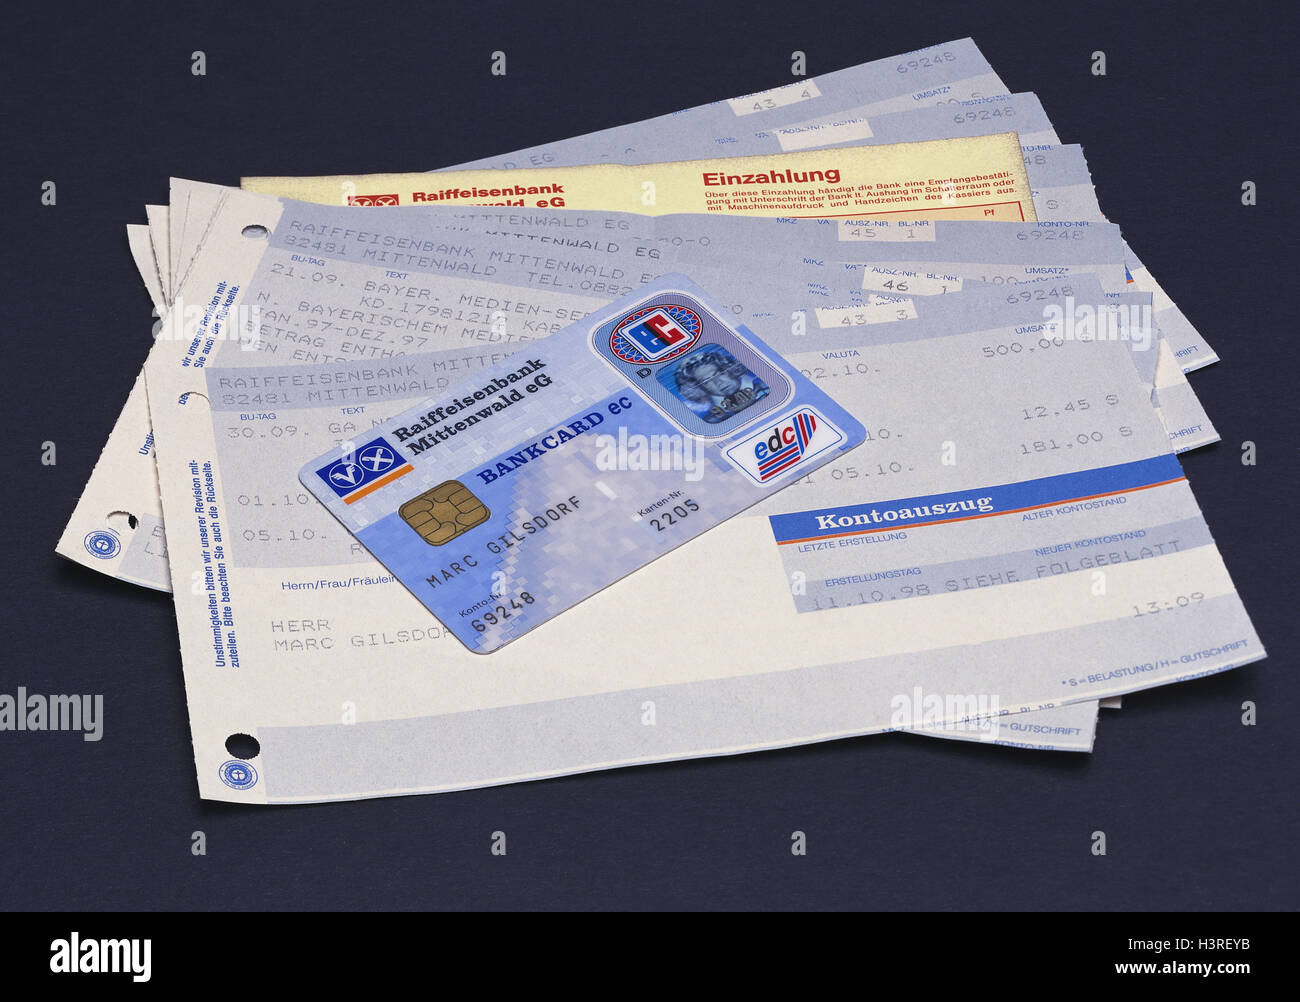 Bank statements, EC-card, bank statement, bank statement, bank, banking transactions, voucher, credit balance, Eurocheque - Stock Image